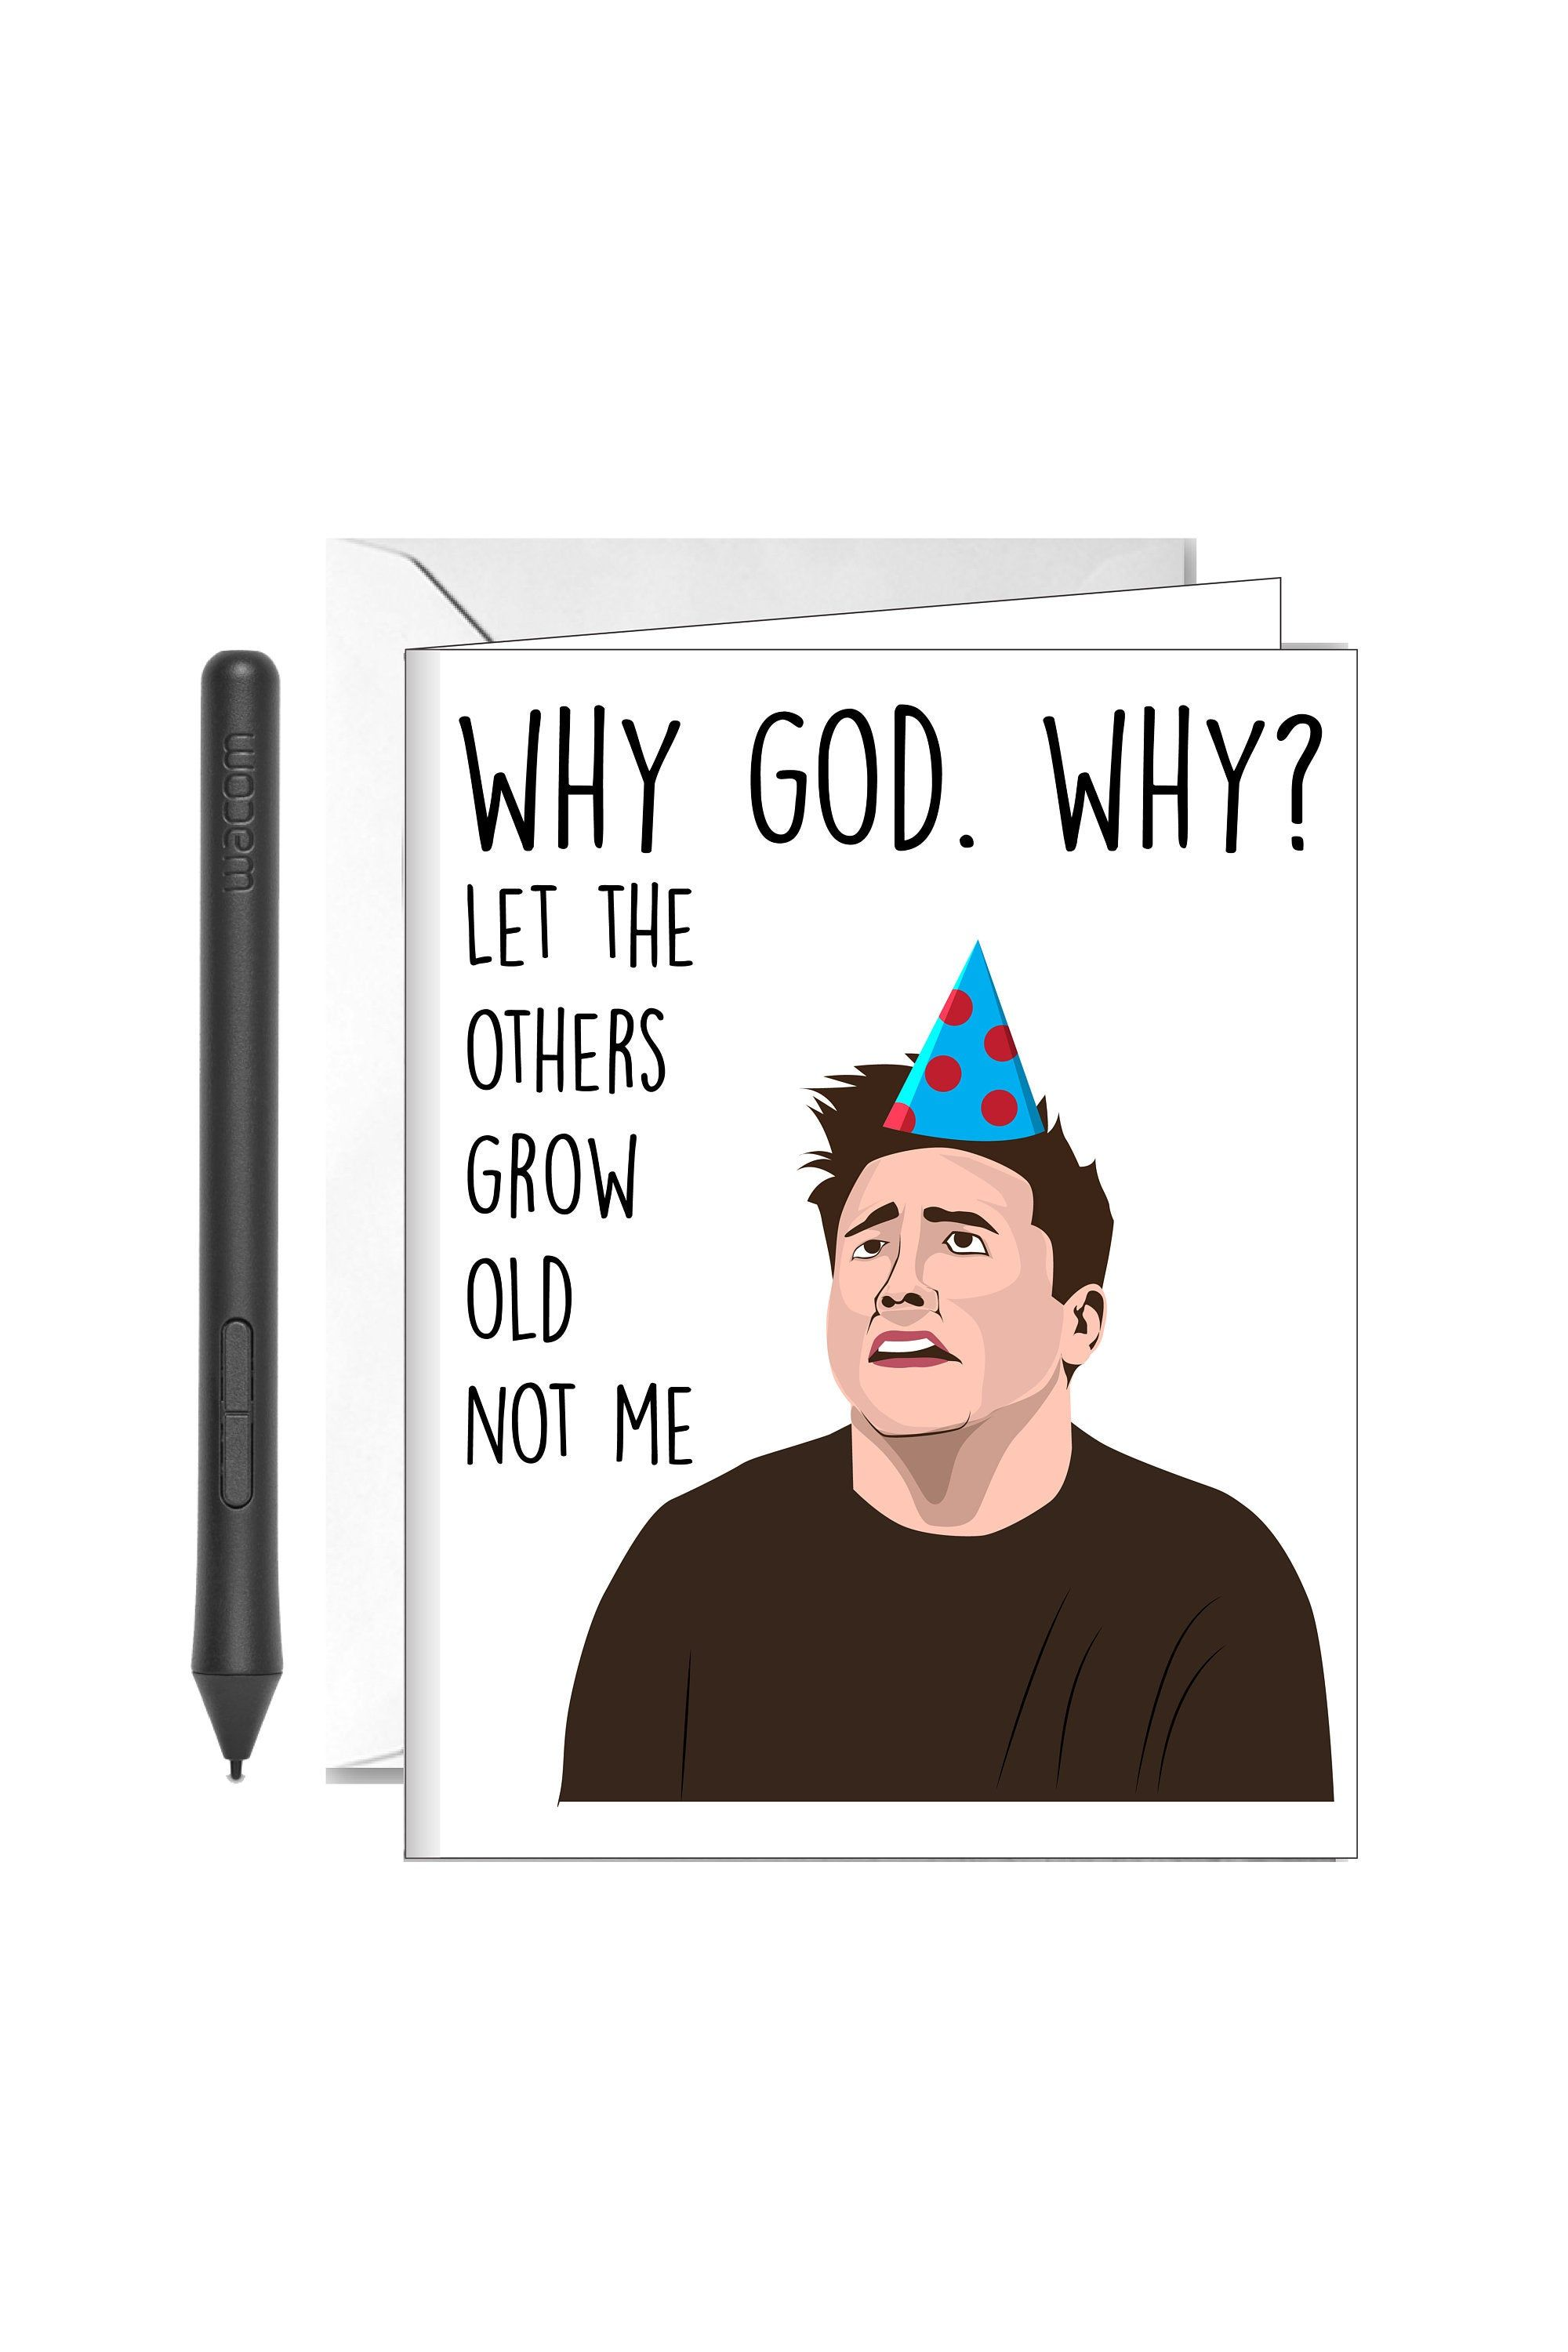 30th Birthday Card Tv Show Card Funny Love Card For Dad Card For Boyfriend Funny Gift For Him Funny Love Cards Funny Fathers Day Card 30th Birthday Cards